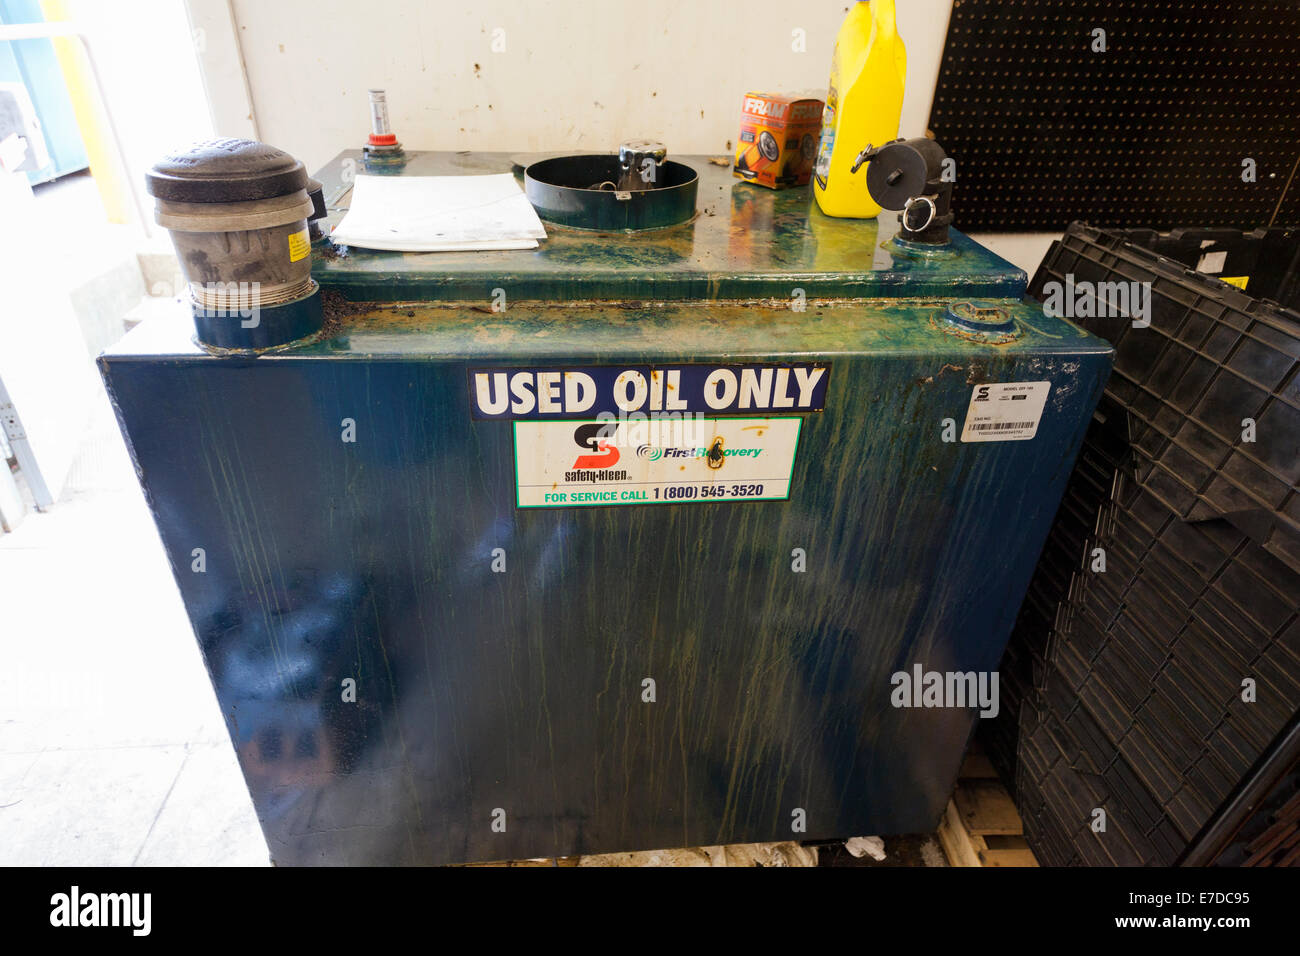 Oil_tank Stockfotos & Oil_tank Bilder - Seite 3 - Alamy